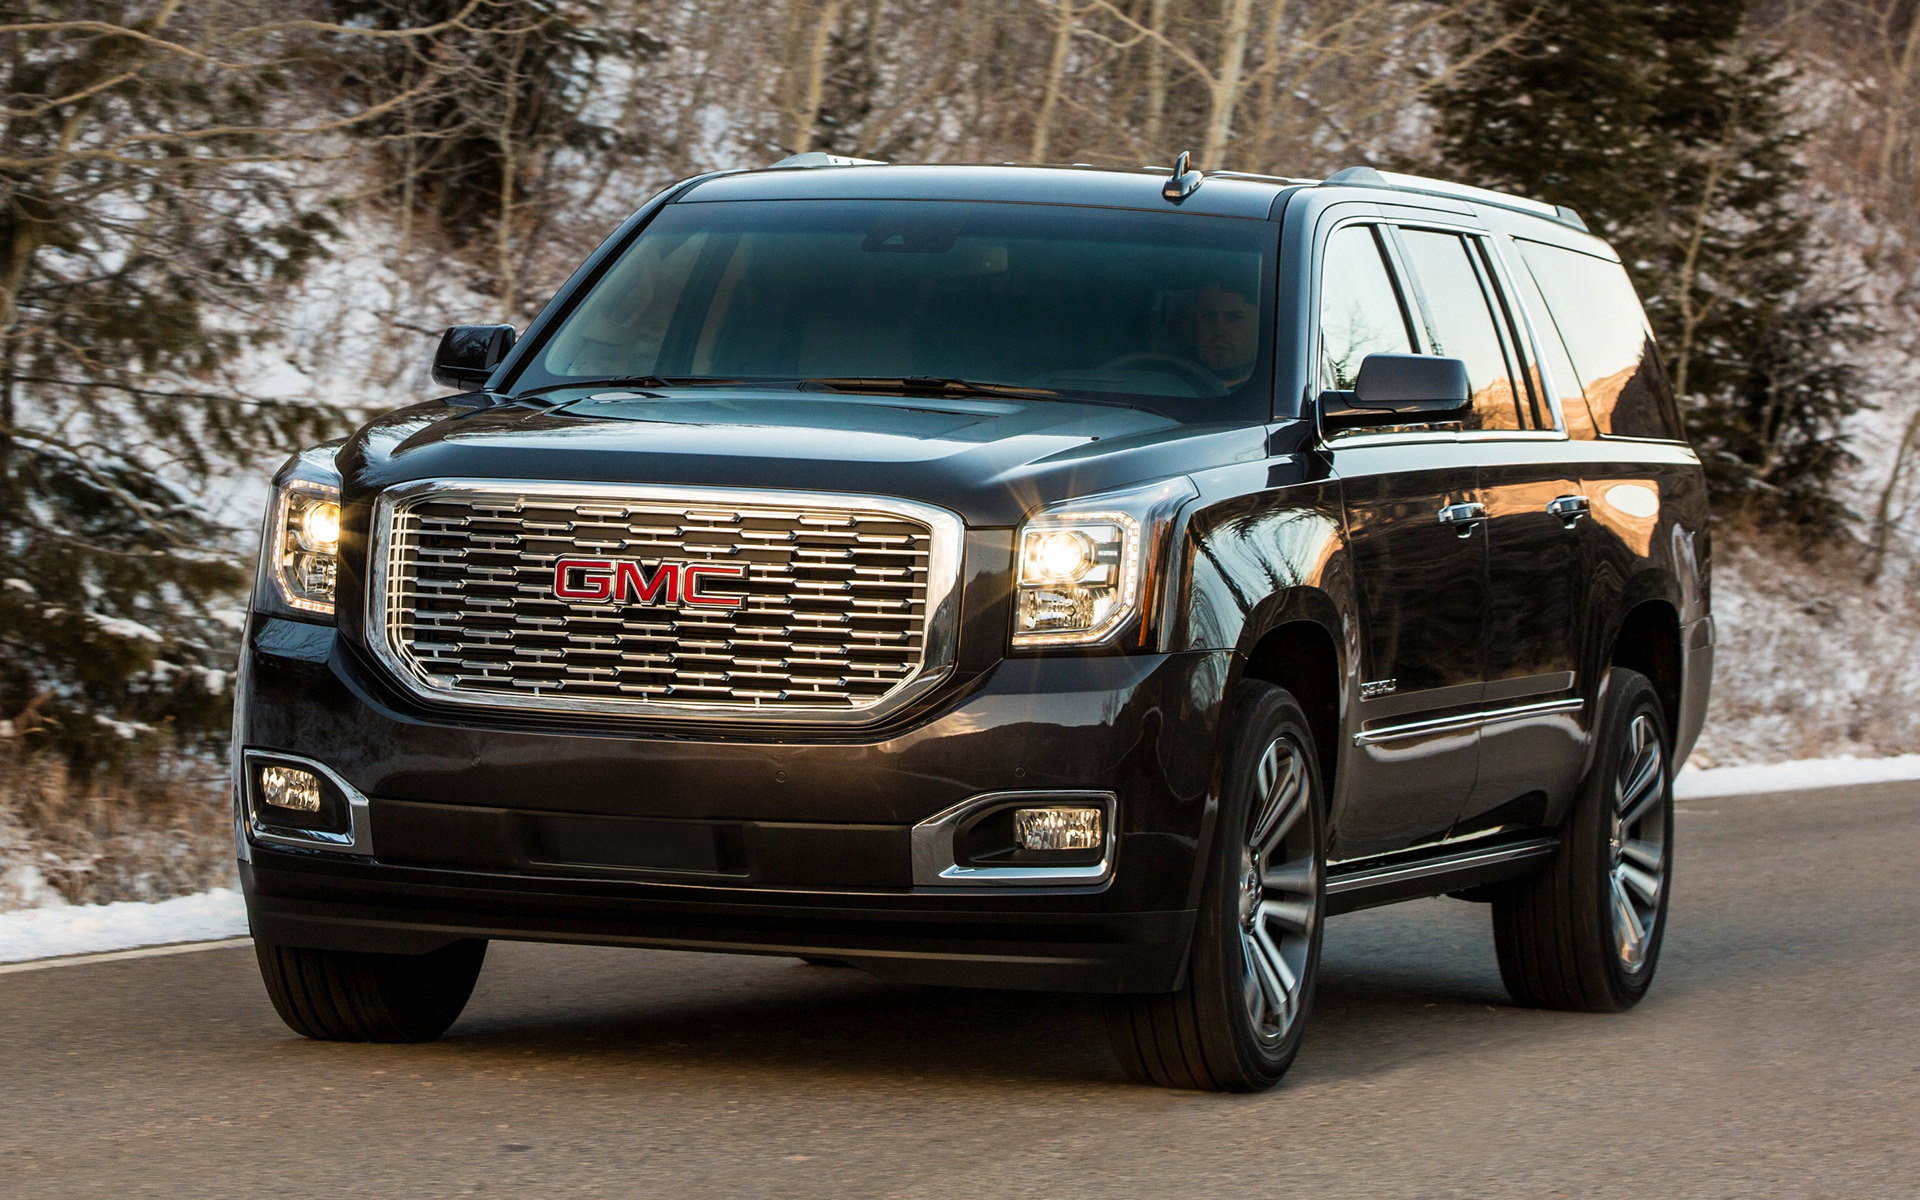 2018 Gmc Yukon Xl Denali Wallpapers And Hd Images Car